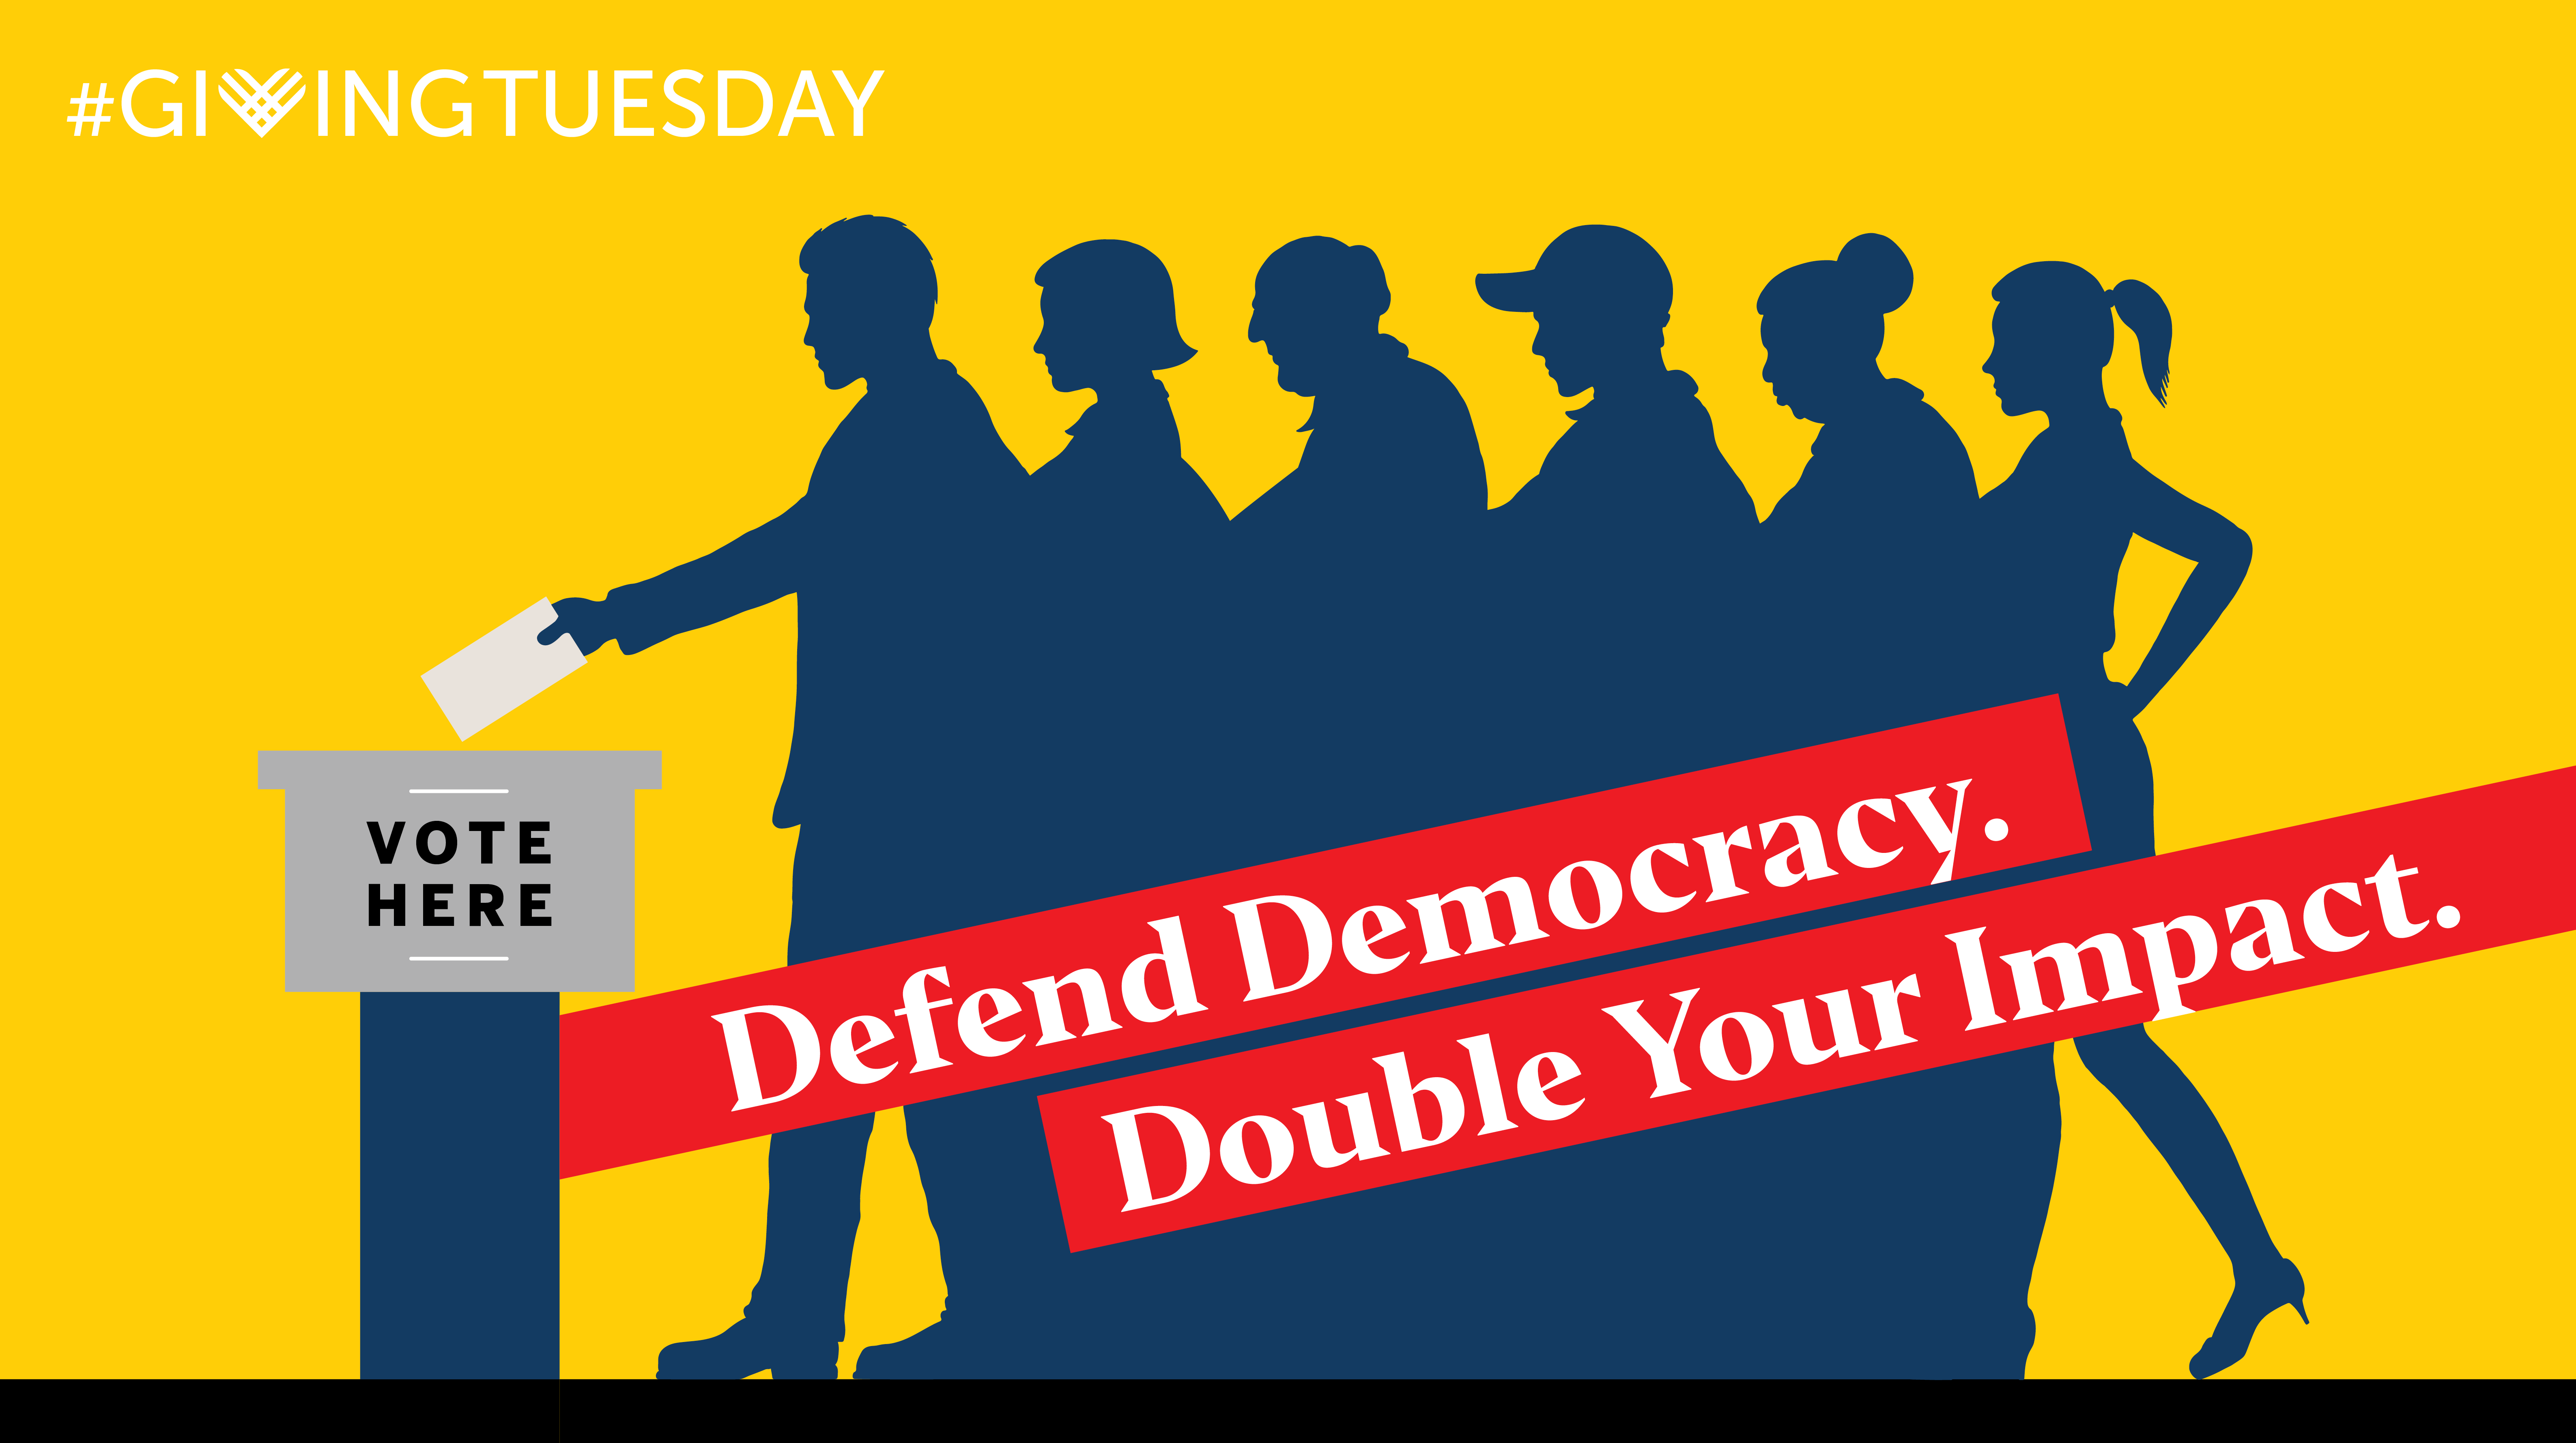 Defend Democracy. Double Your Impact